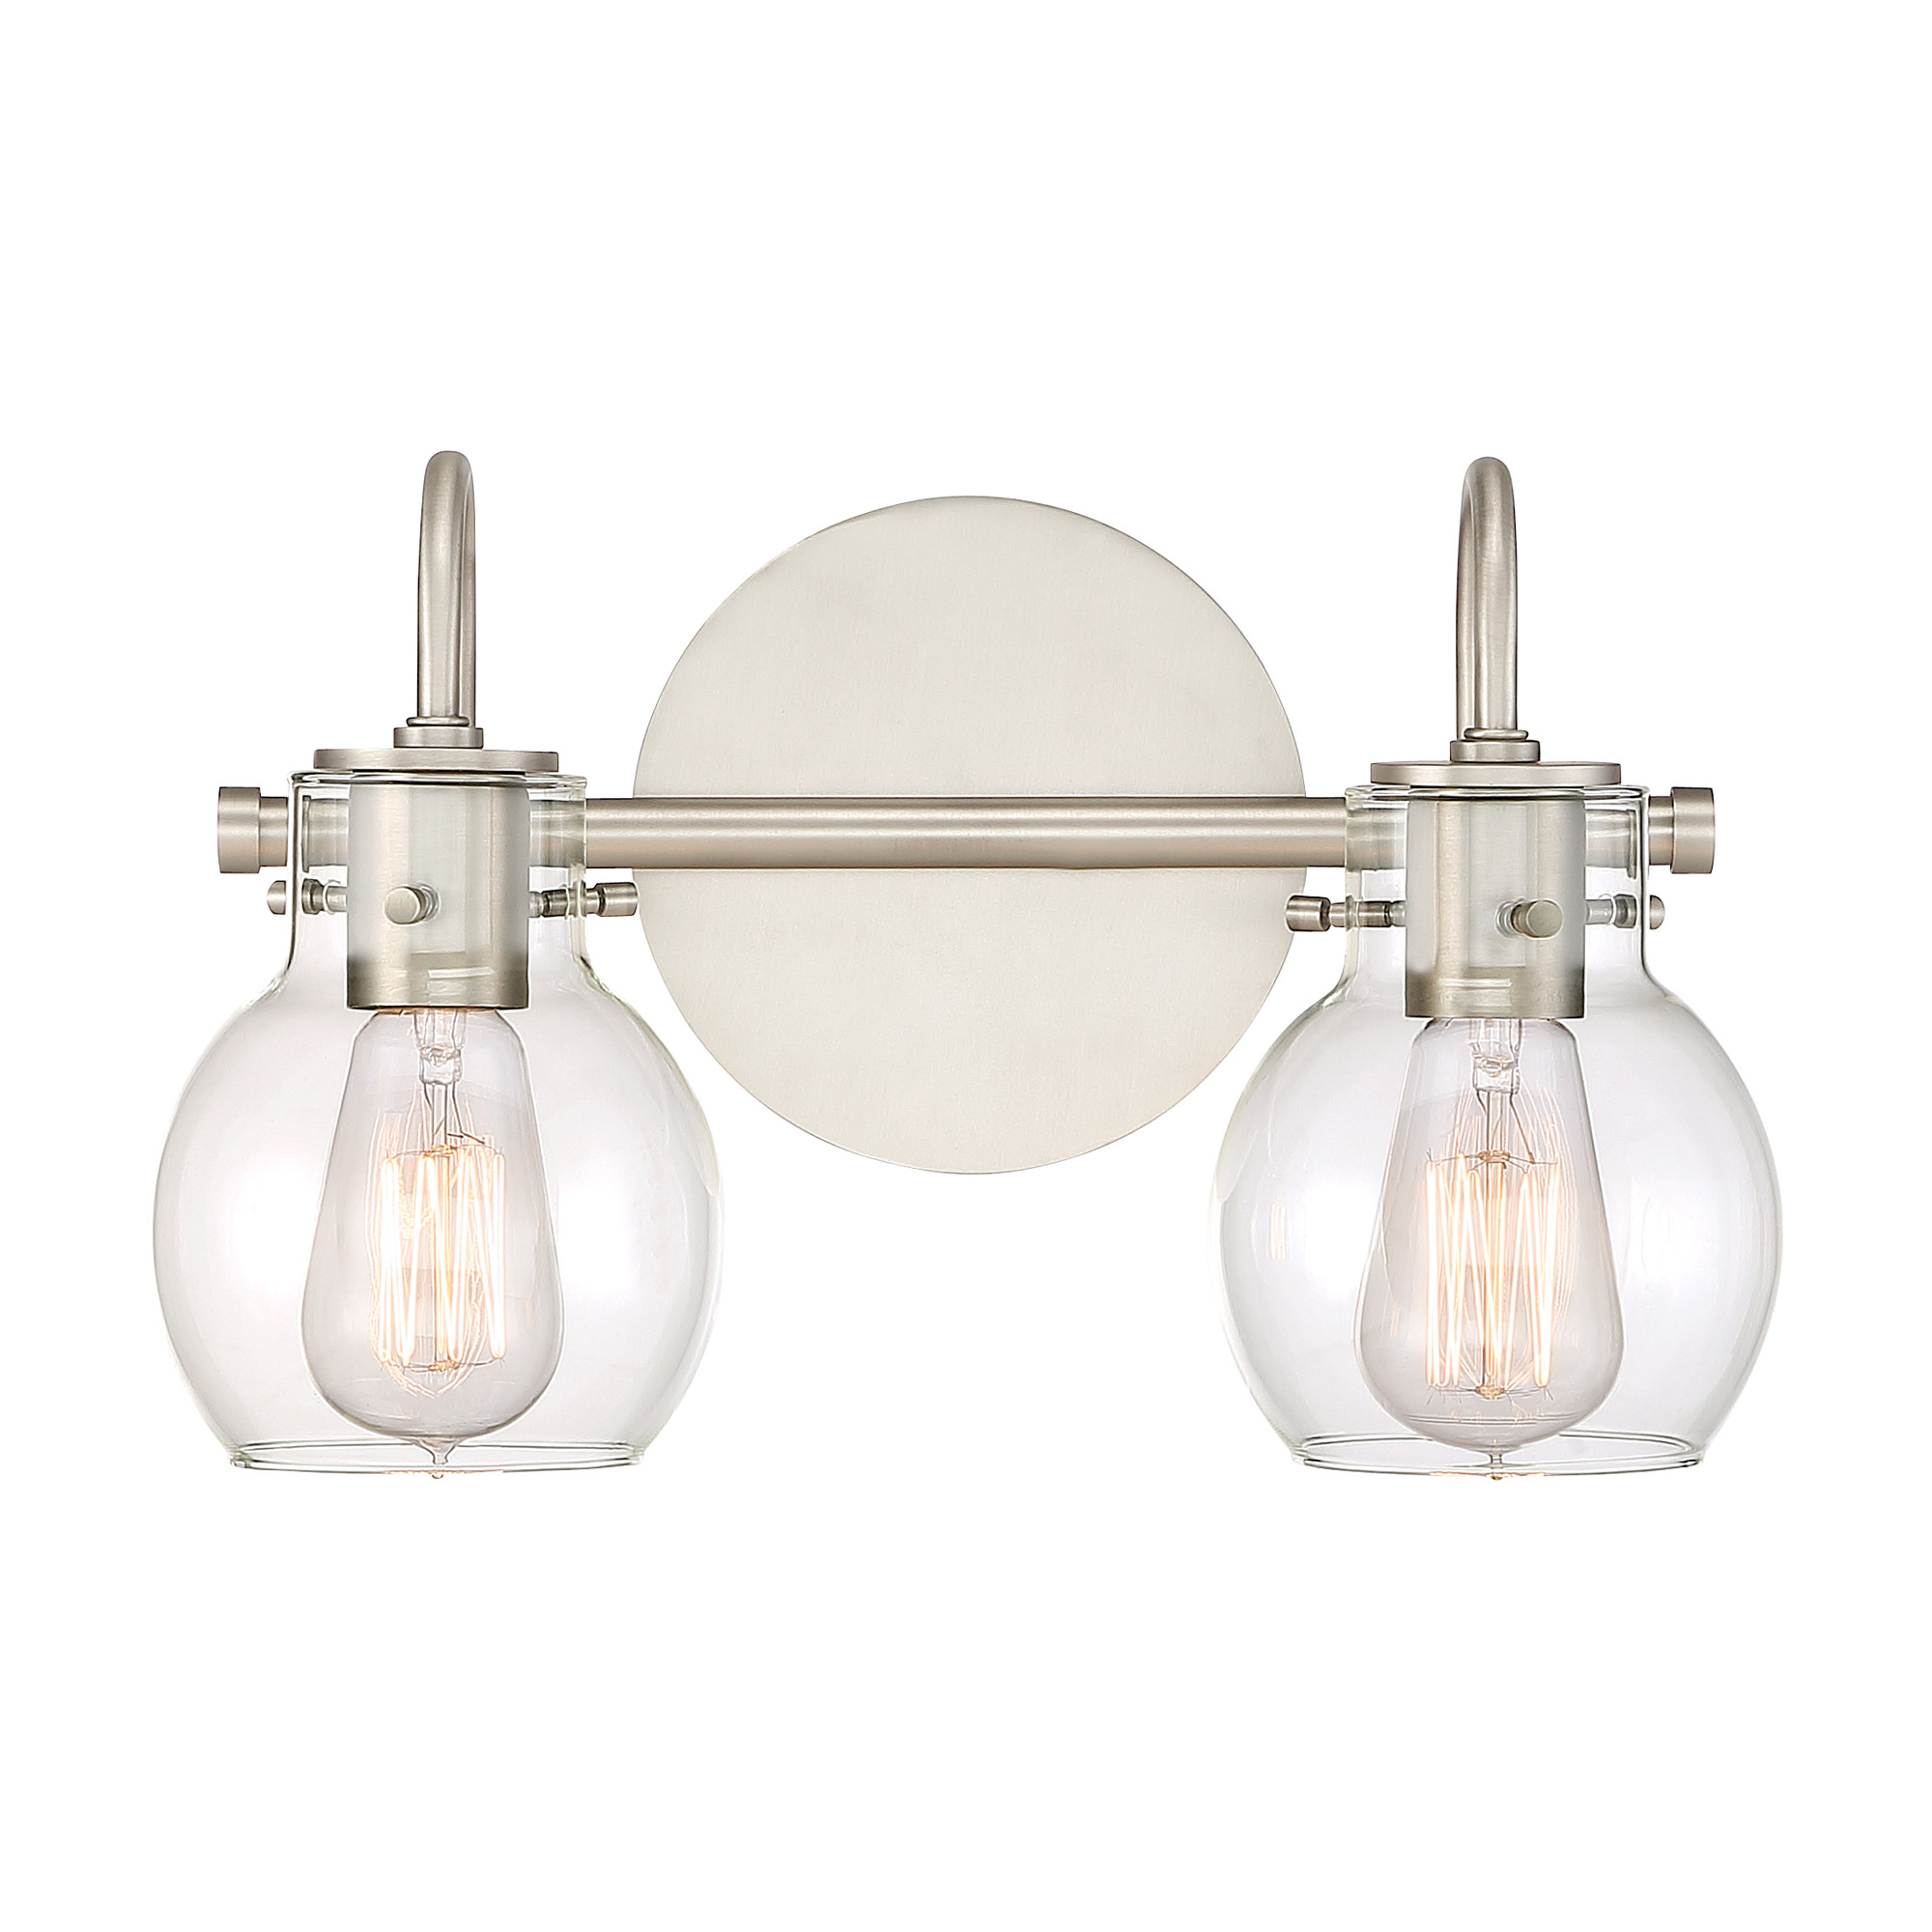 Andrews Bathroom Vanity Light By Quoizel